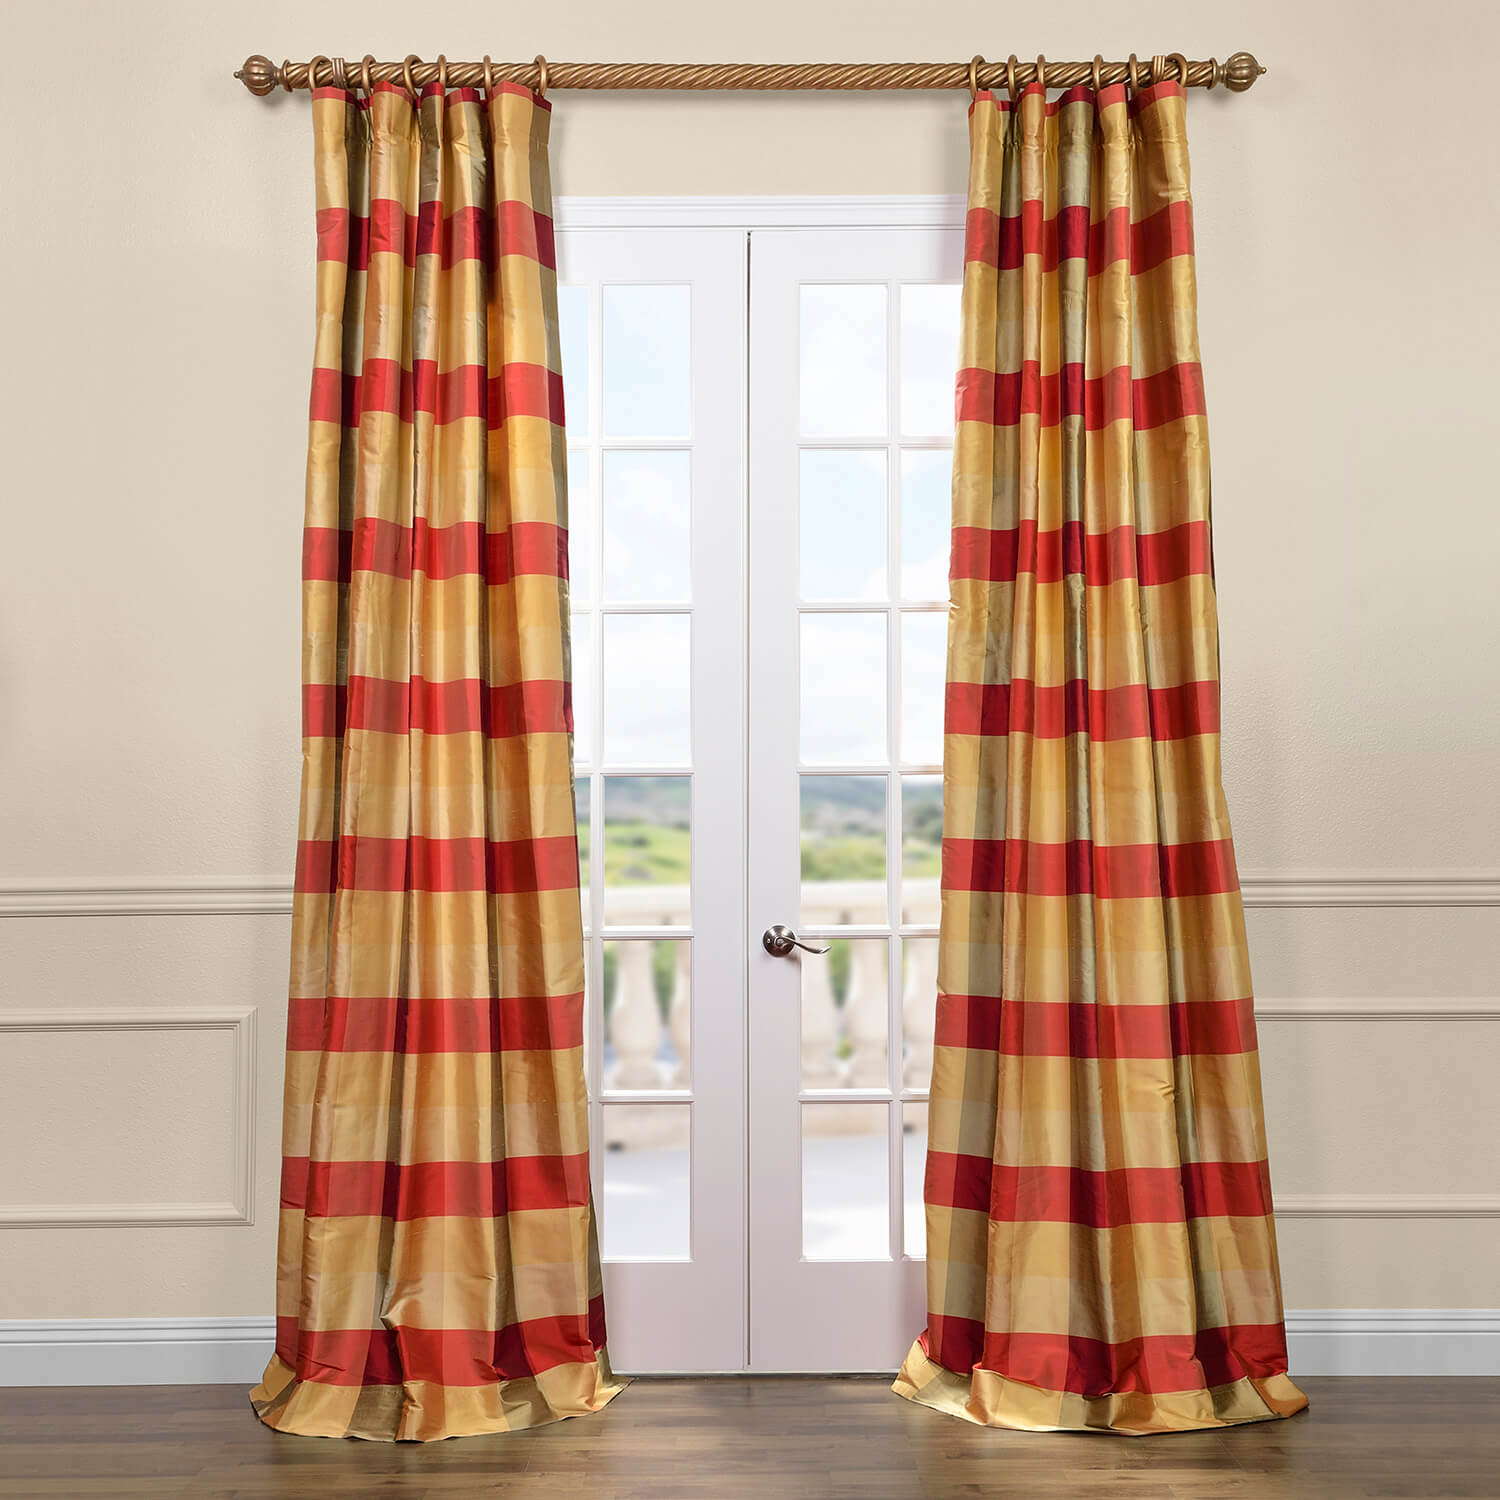 Red plaid curtains - Dynasty Silk Taffeta Plaid Curtain